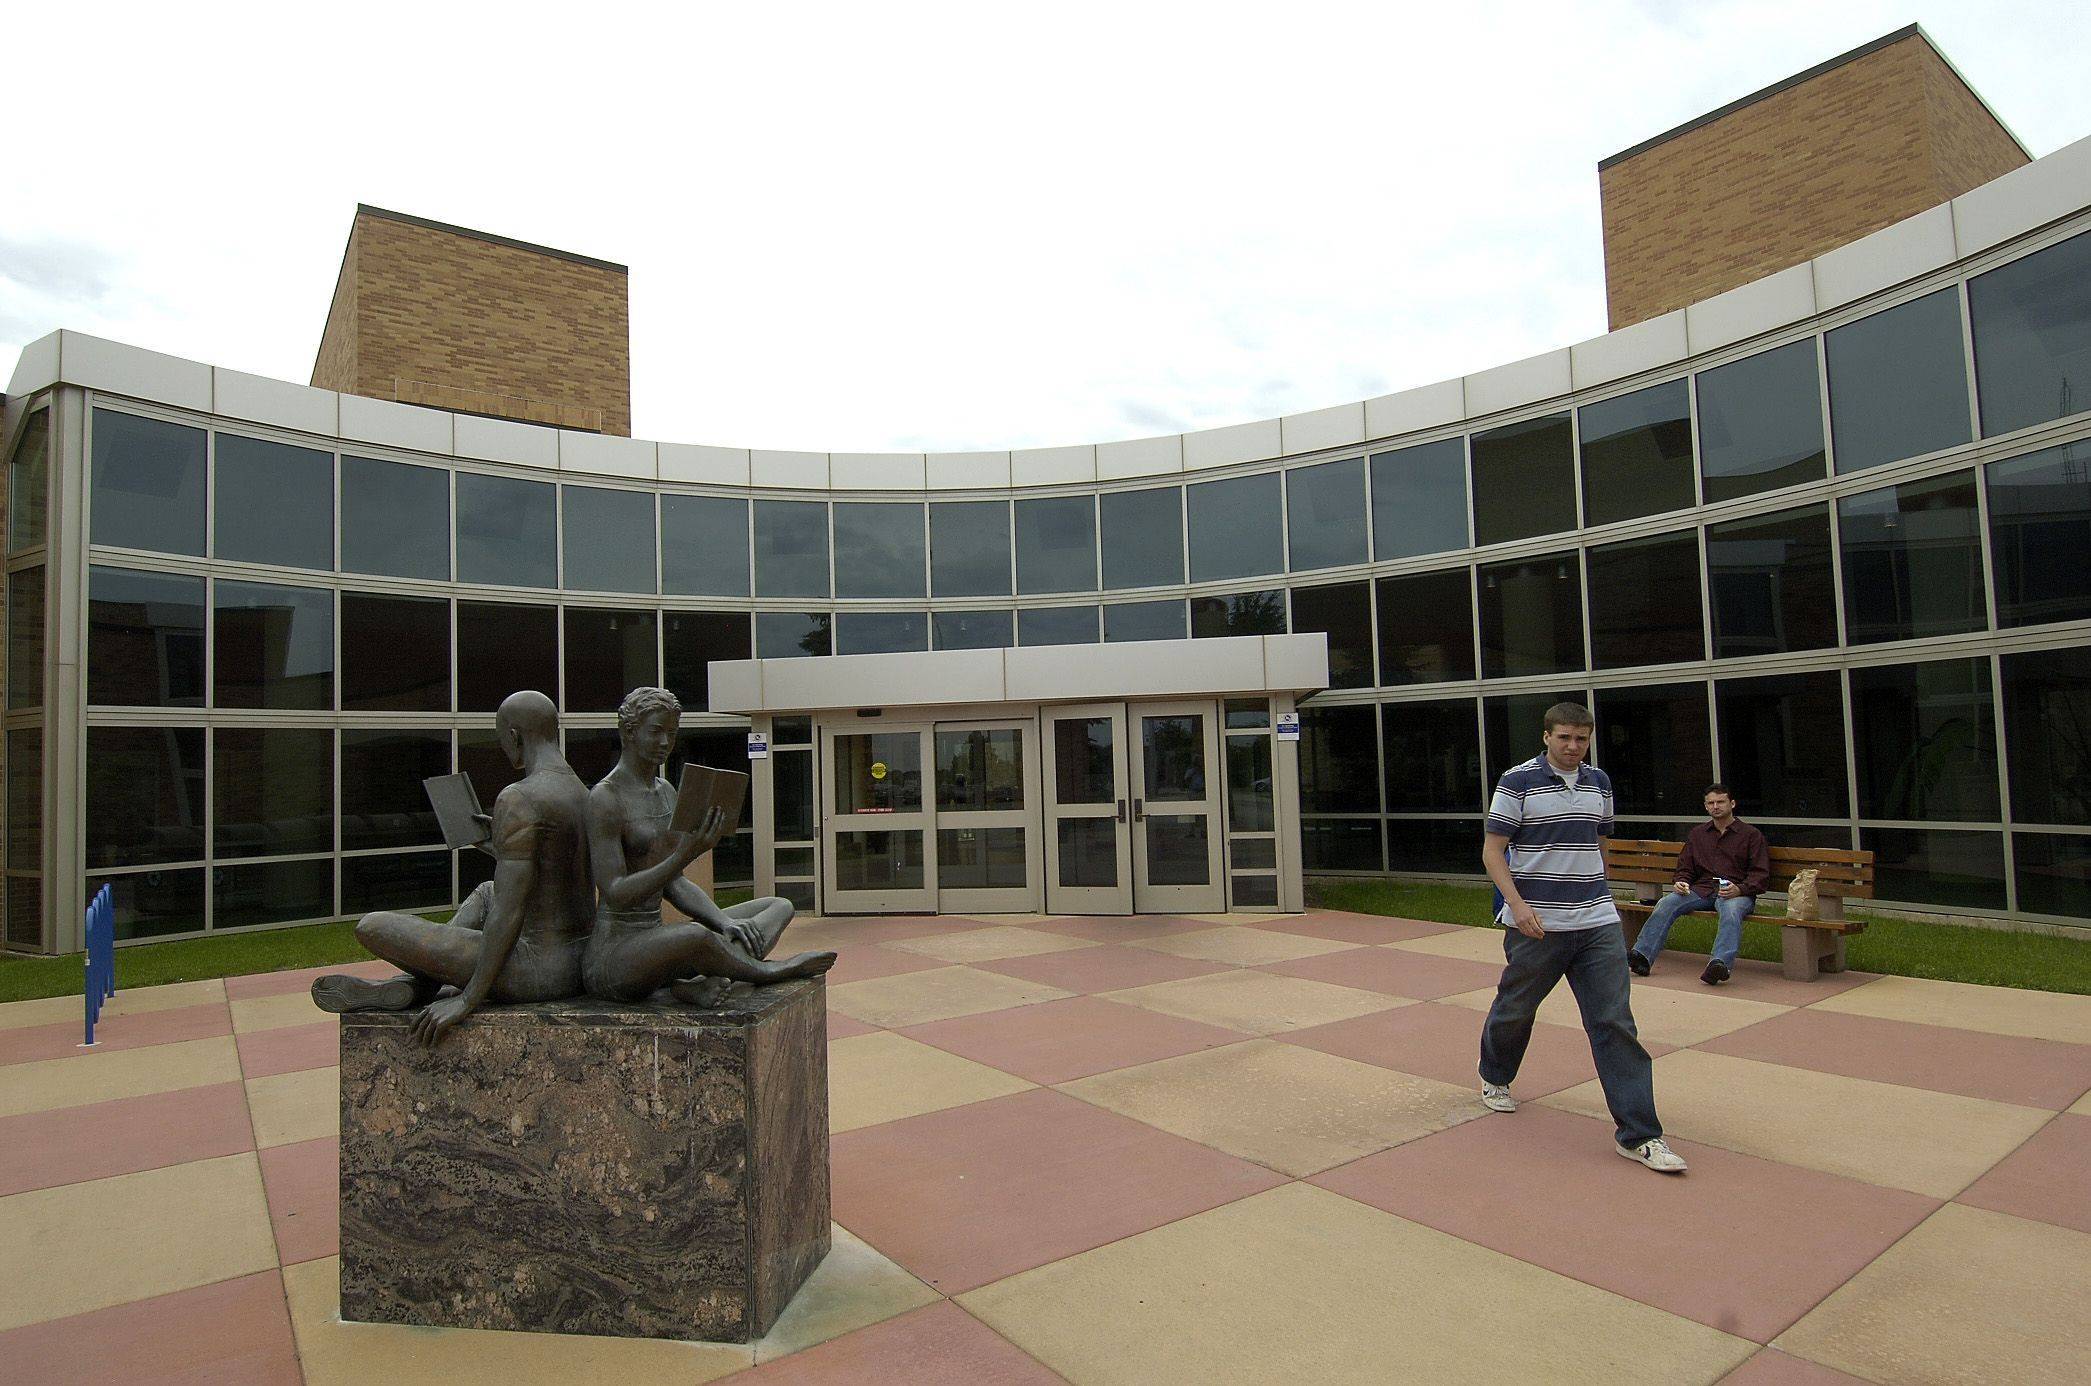 The College of Lake County's main campus in Grayslake will be adding a new science building under a plan approved this week. The proposal calls for the college to borrow $19 million to help fund the new facilities in Grayslake and the college's Lakeshore campus in Waukegan. The state will be paying for 75 percent of the construction costs.